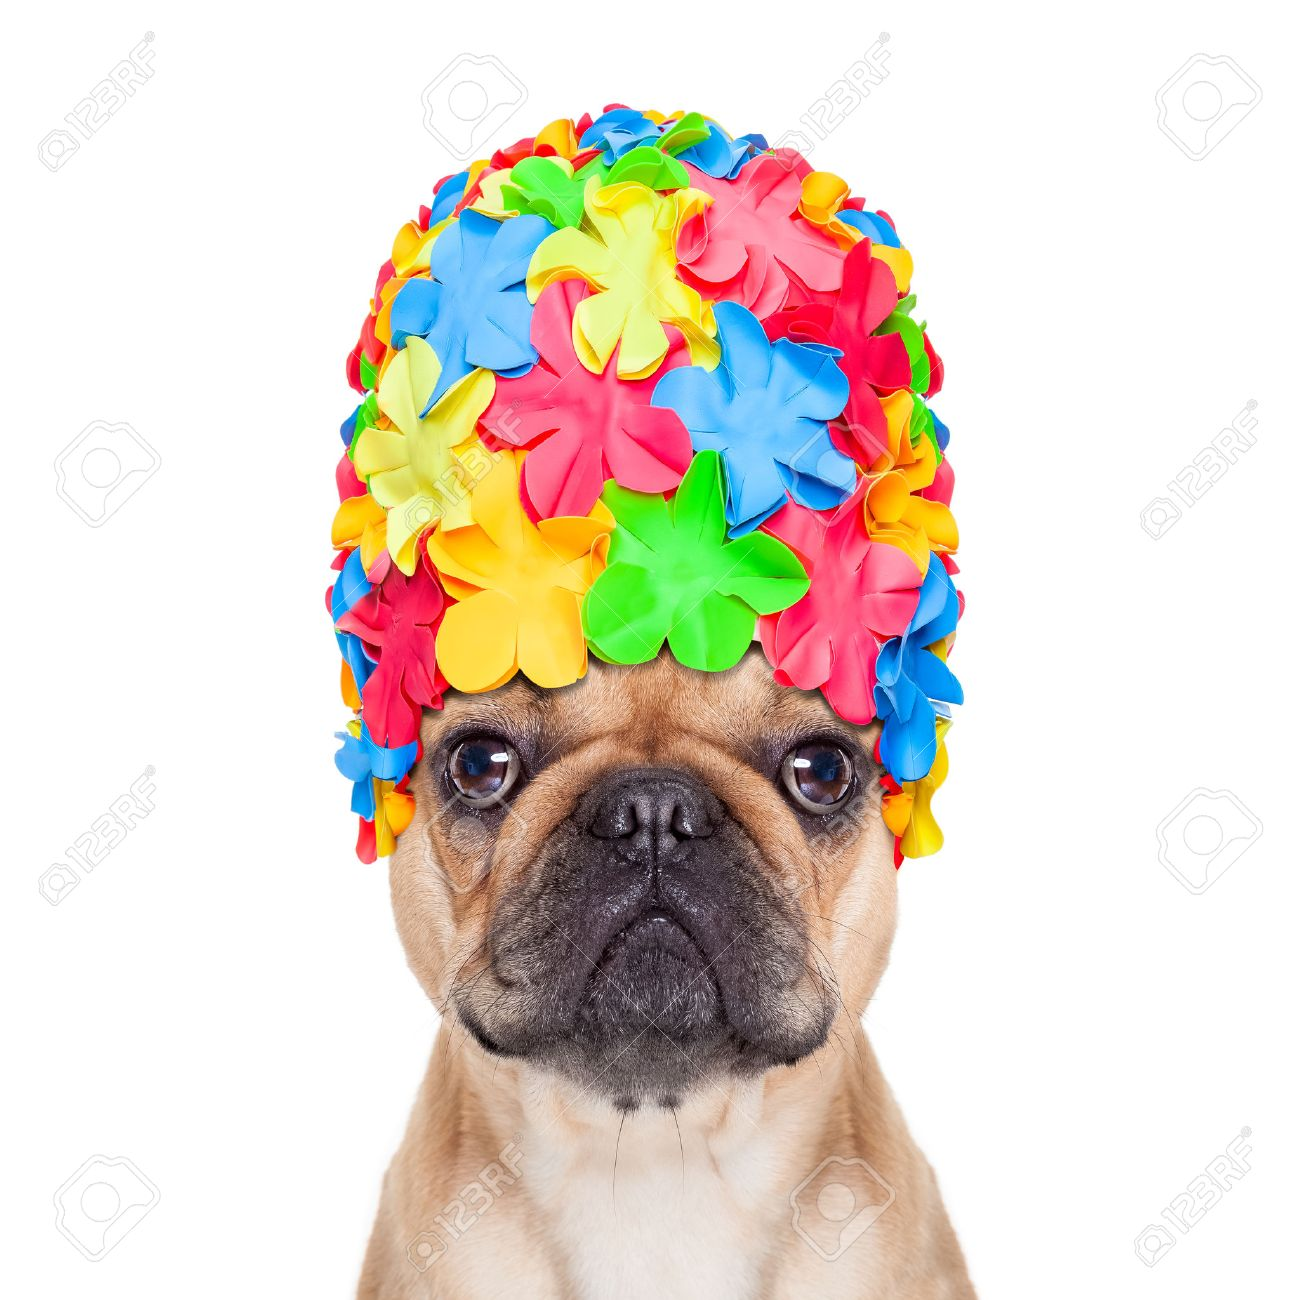 64167bd23020d1 ... isolated on white background. french bulldog dog wearing a bathing or swimming  cap ready to enjoy the summer vacation holidays